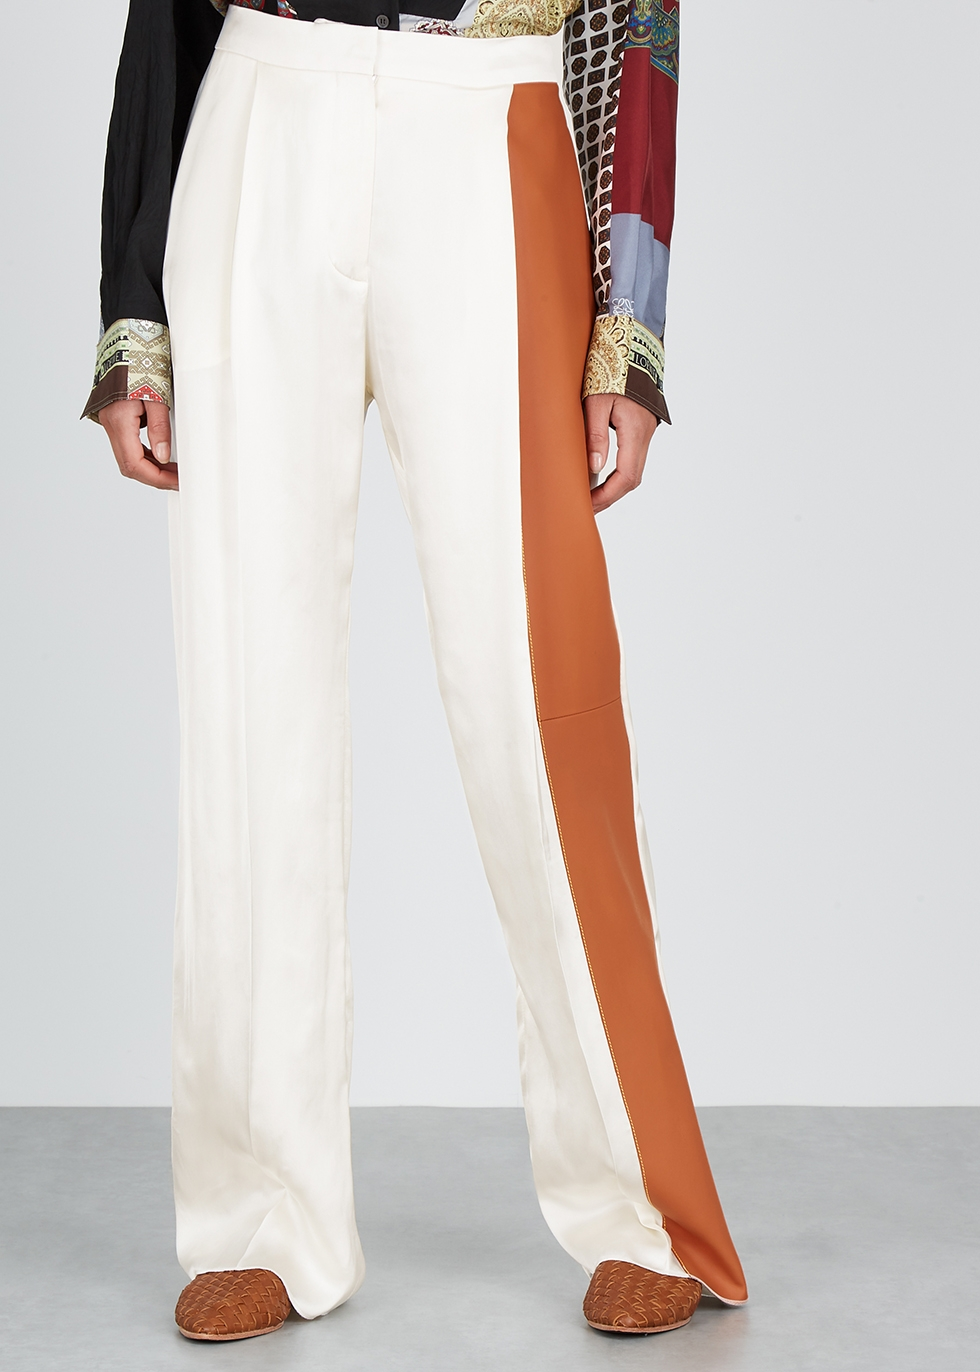 Ivory satin and leather trousers - Loewe